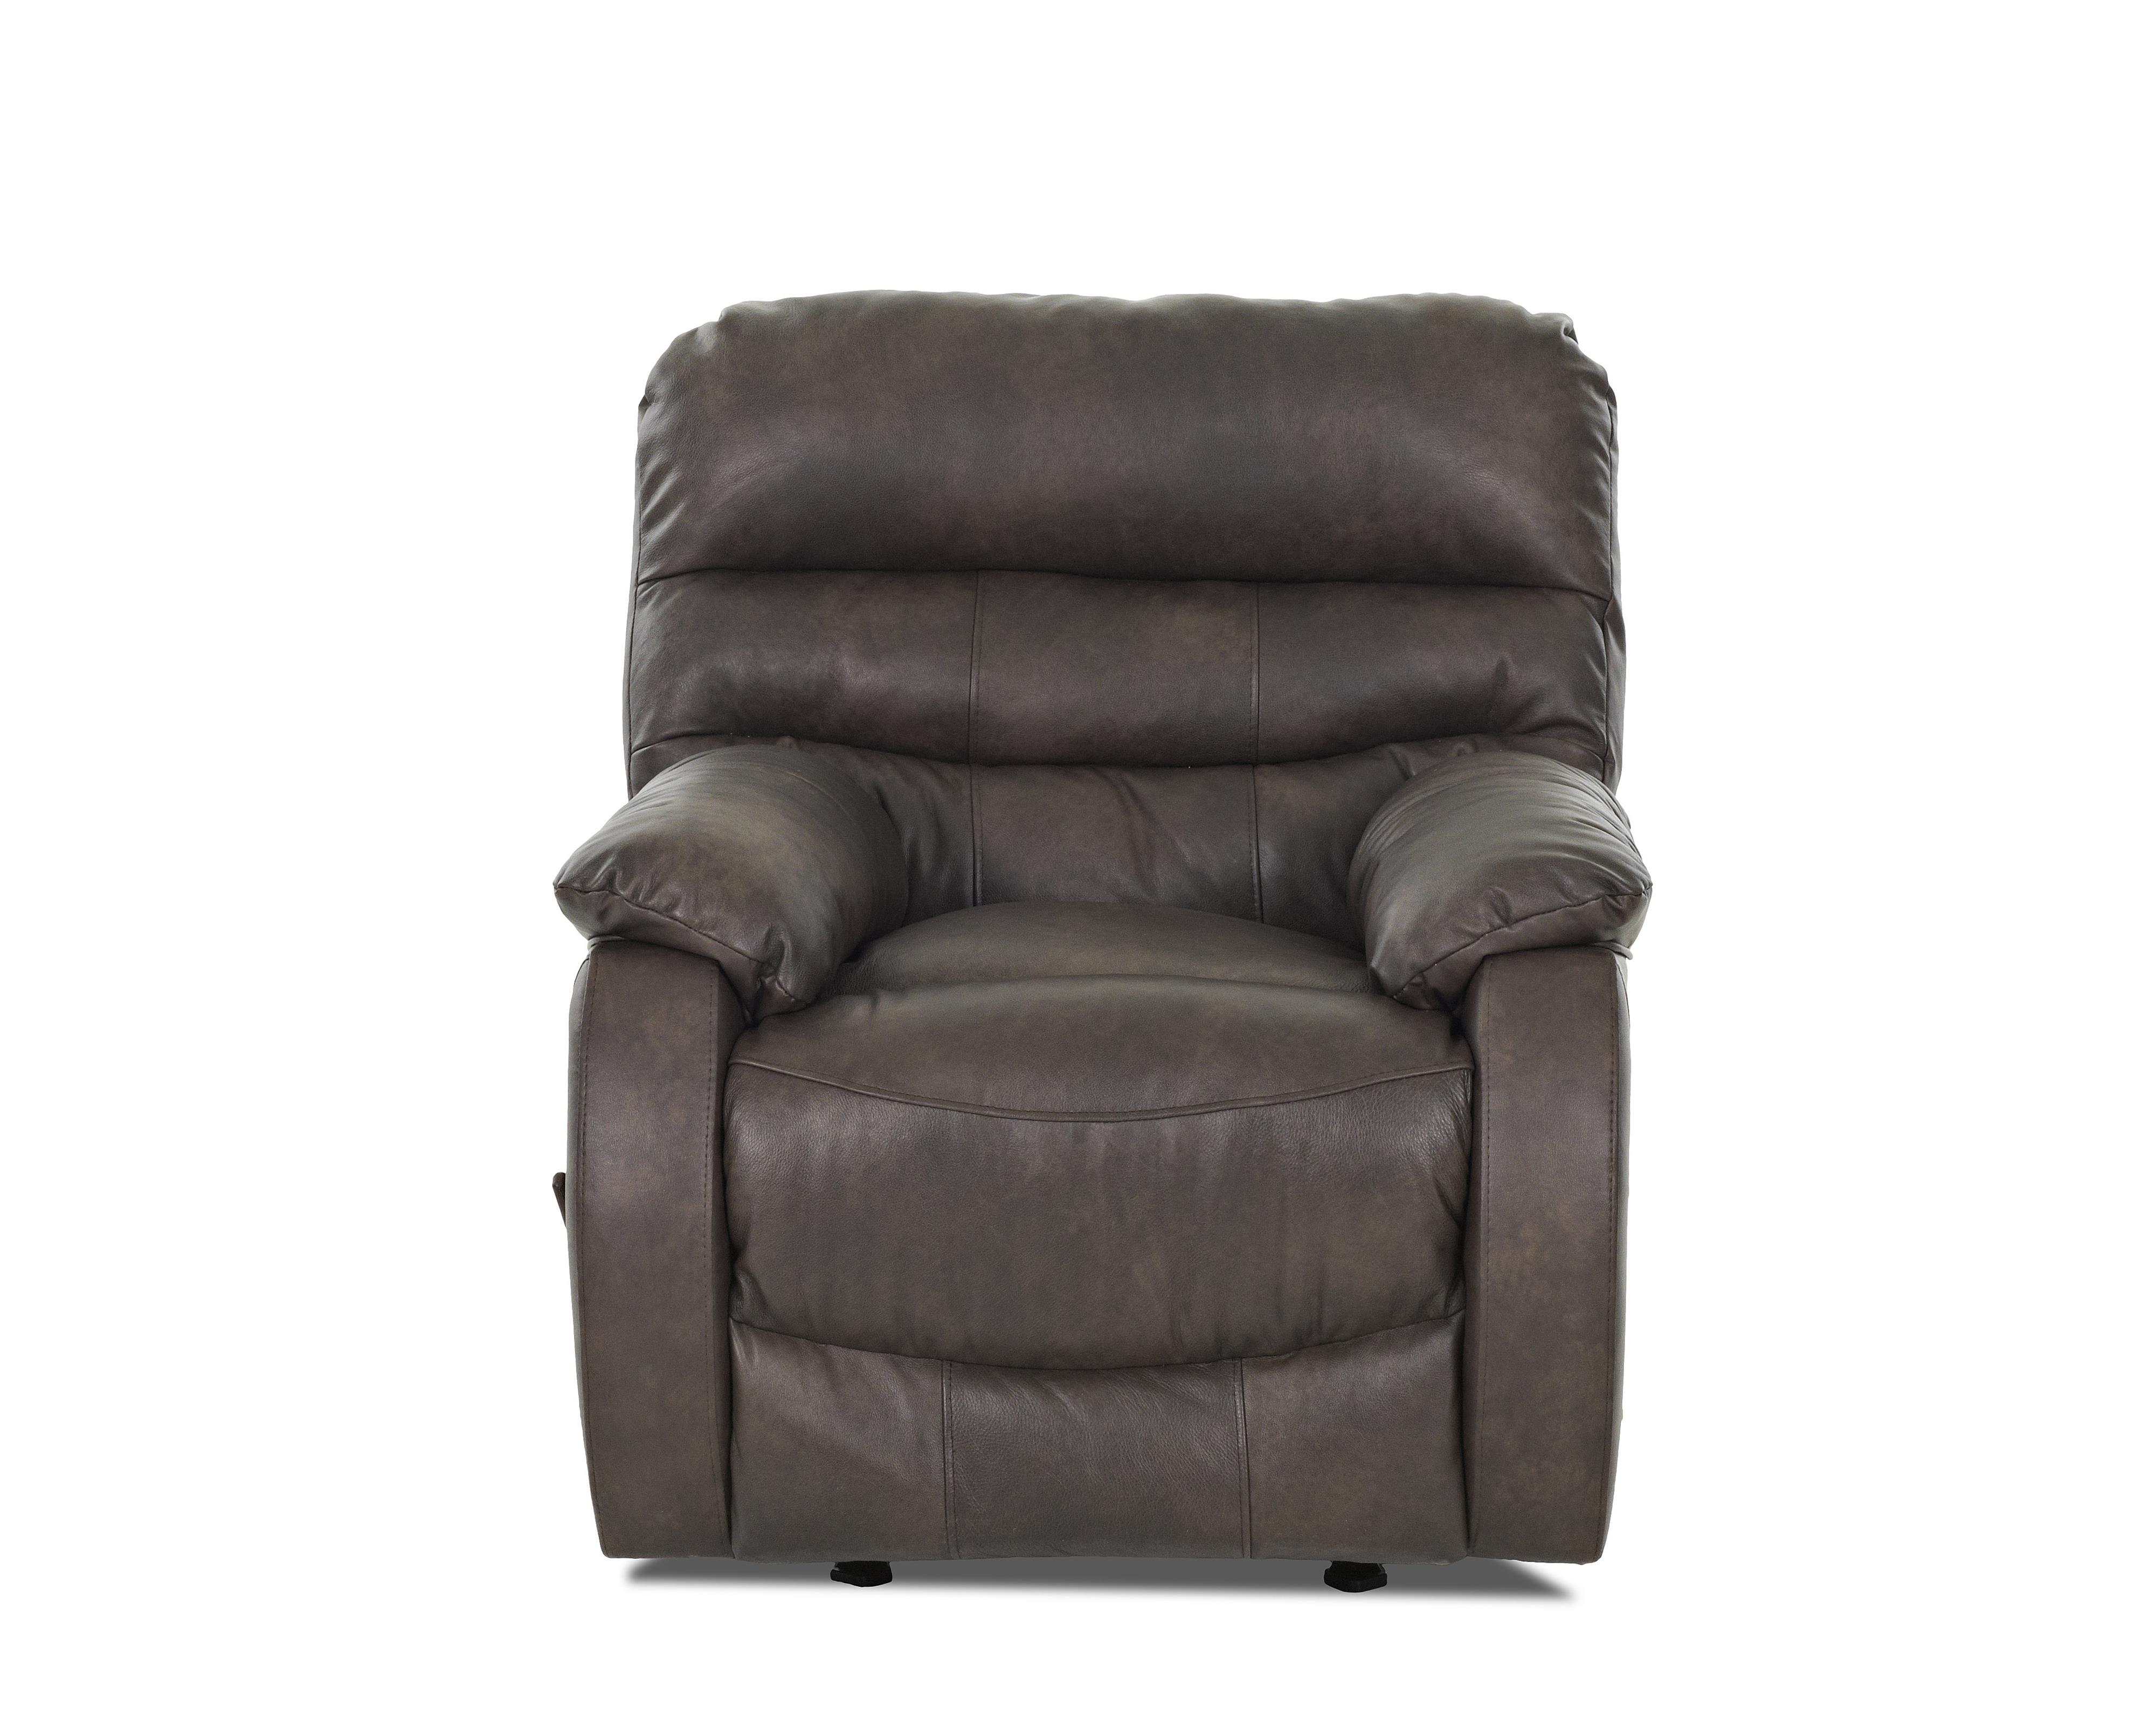 Swivel Gliding Reclining Chair